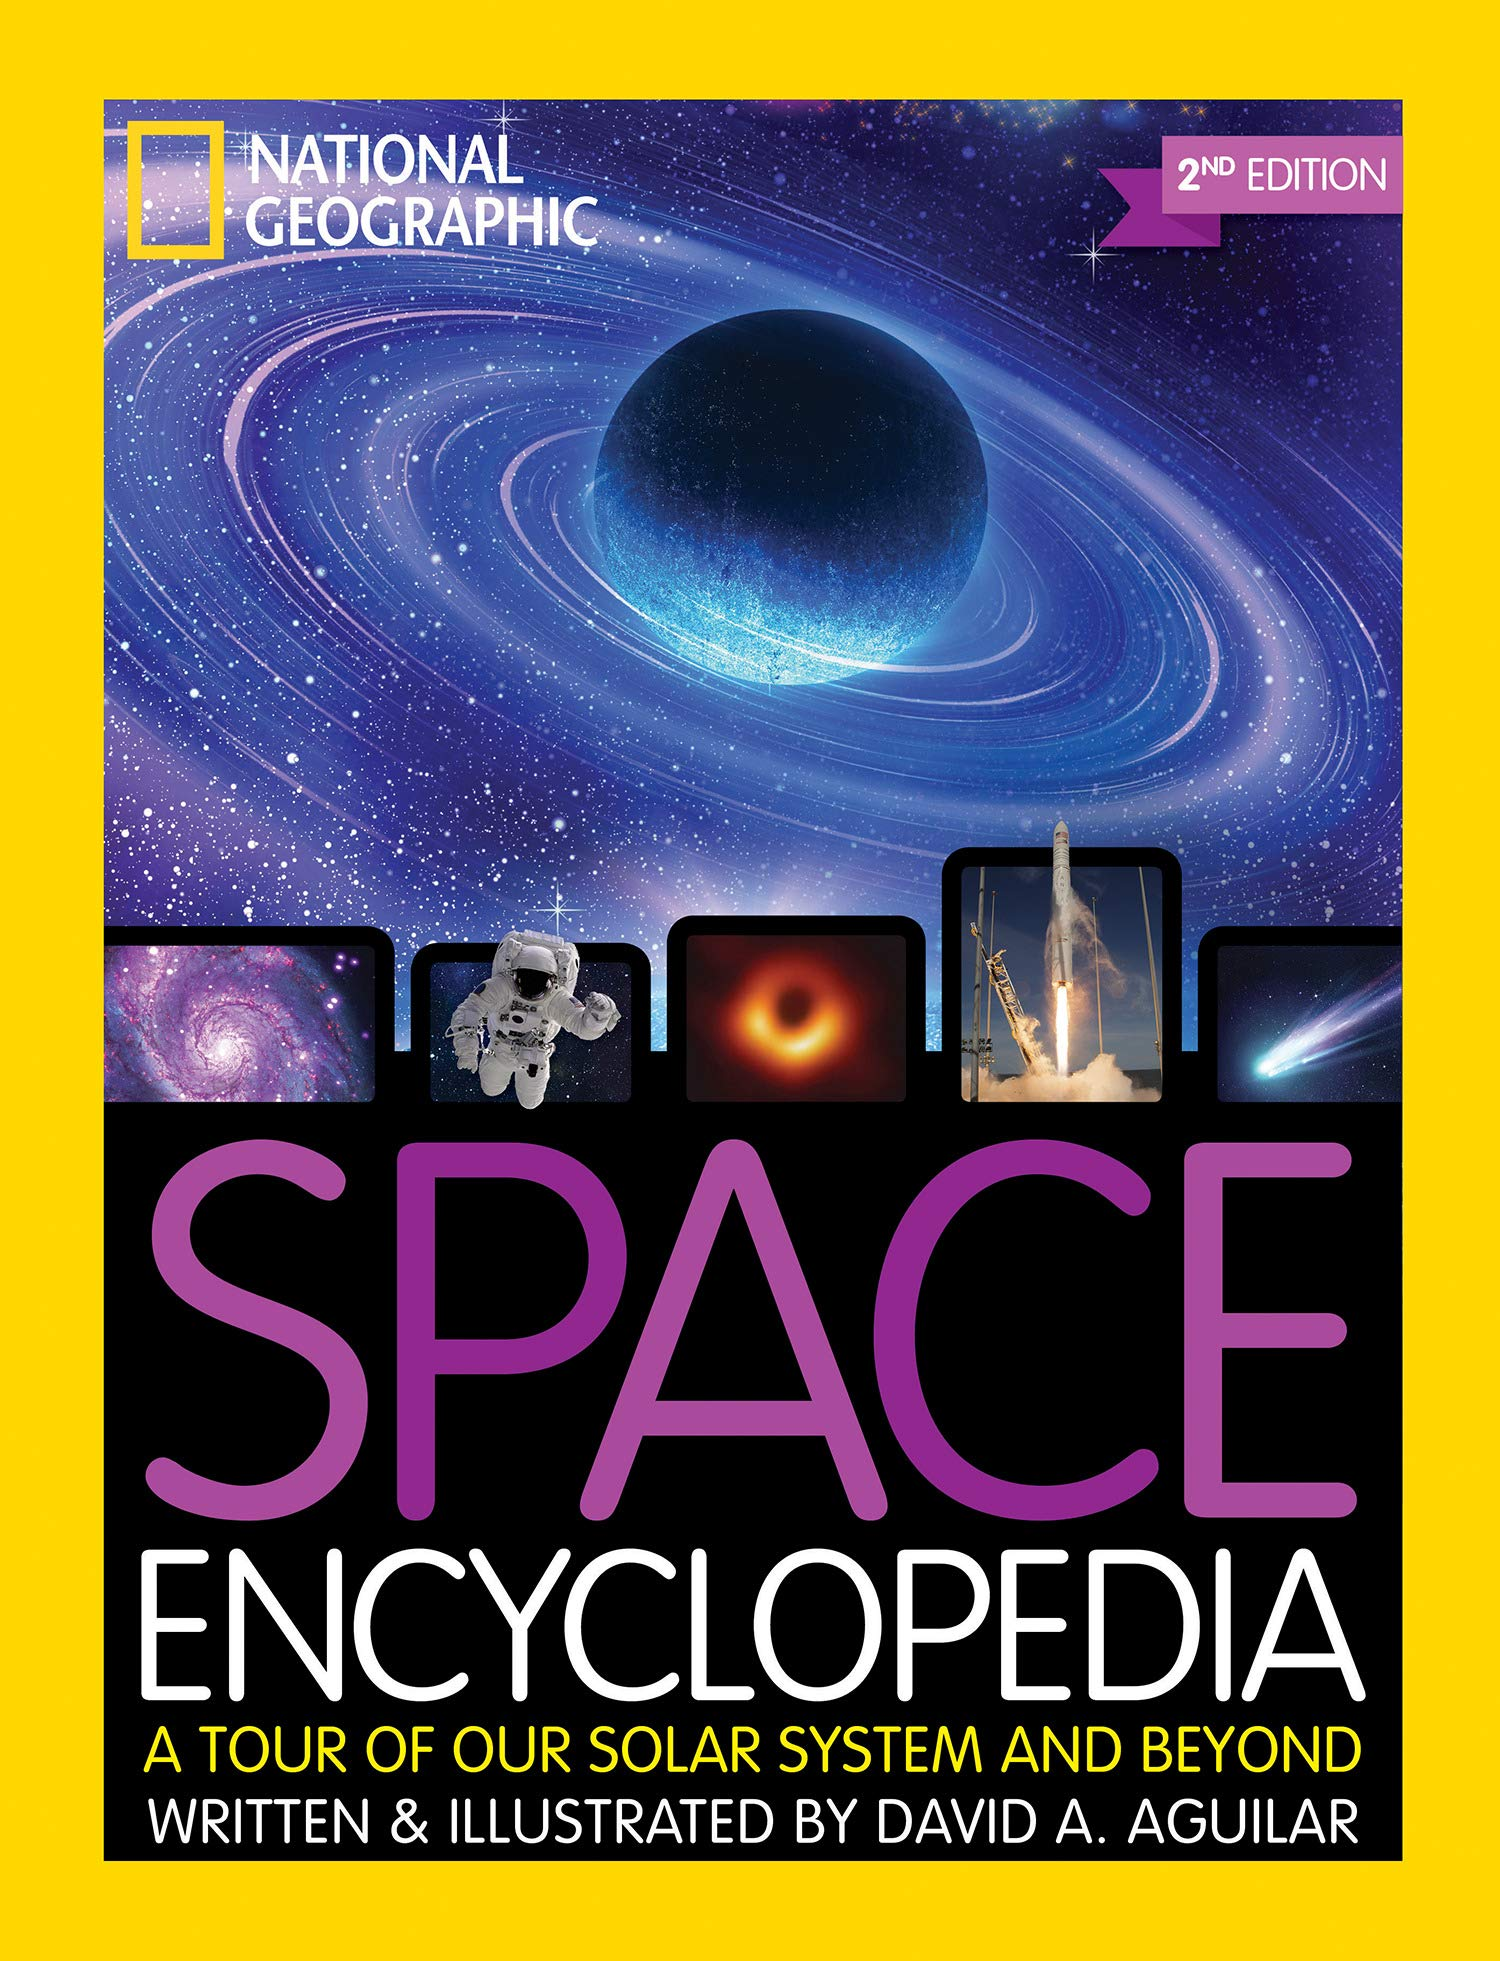 Space Encyclopedia: A Tour of Our Solar System and Beyond, 2nd edition